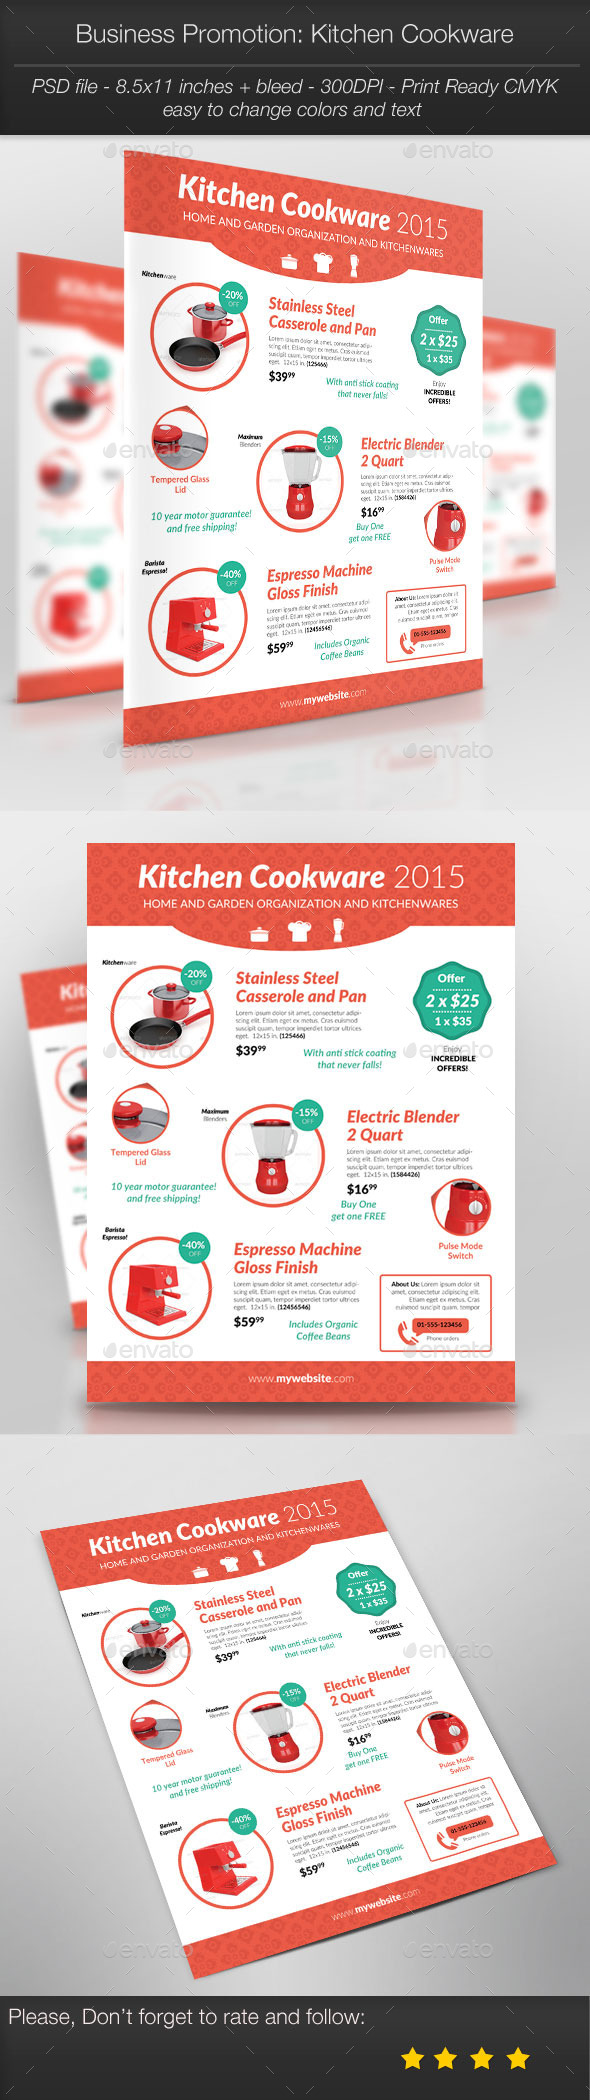 GraphicRiver Business Promotion Kitchen Cookware 10950075